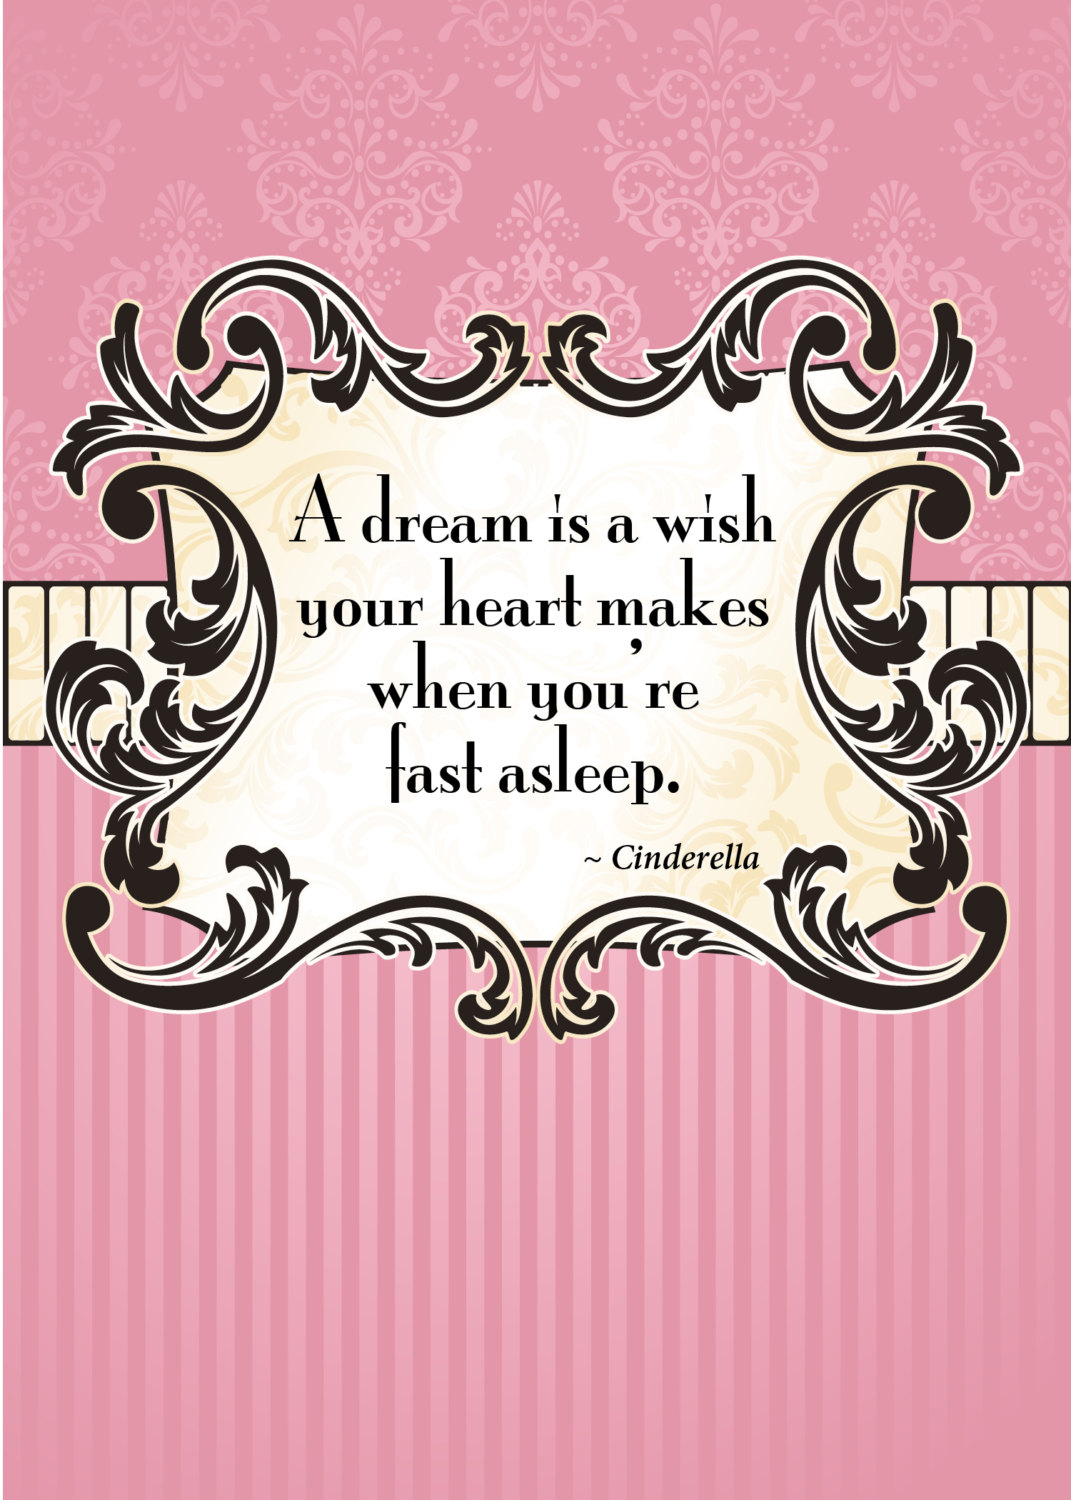 Cinderella Quotes Print Of Quote From Disney's Cinderella